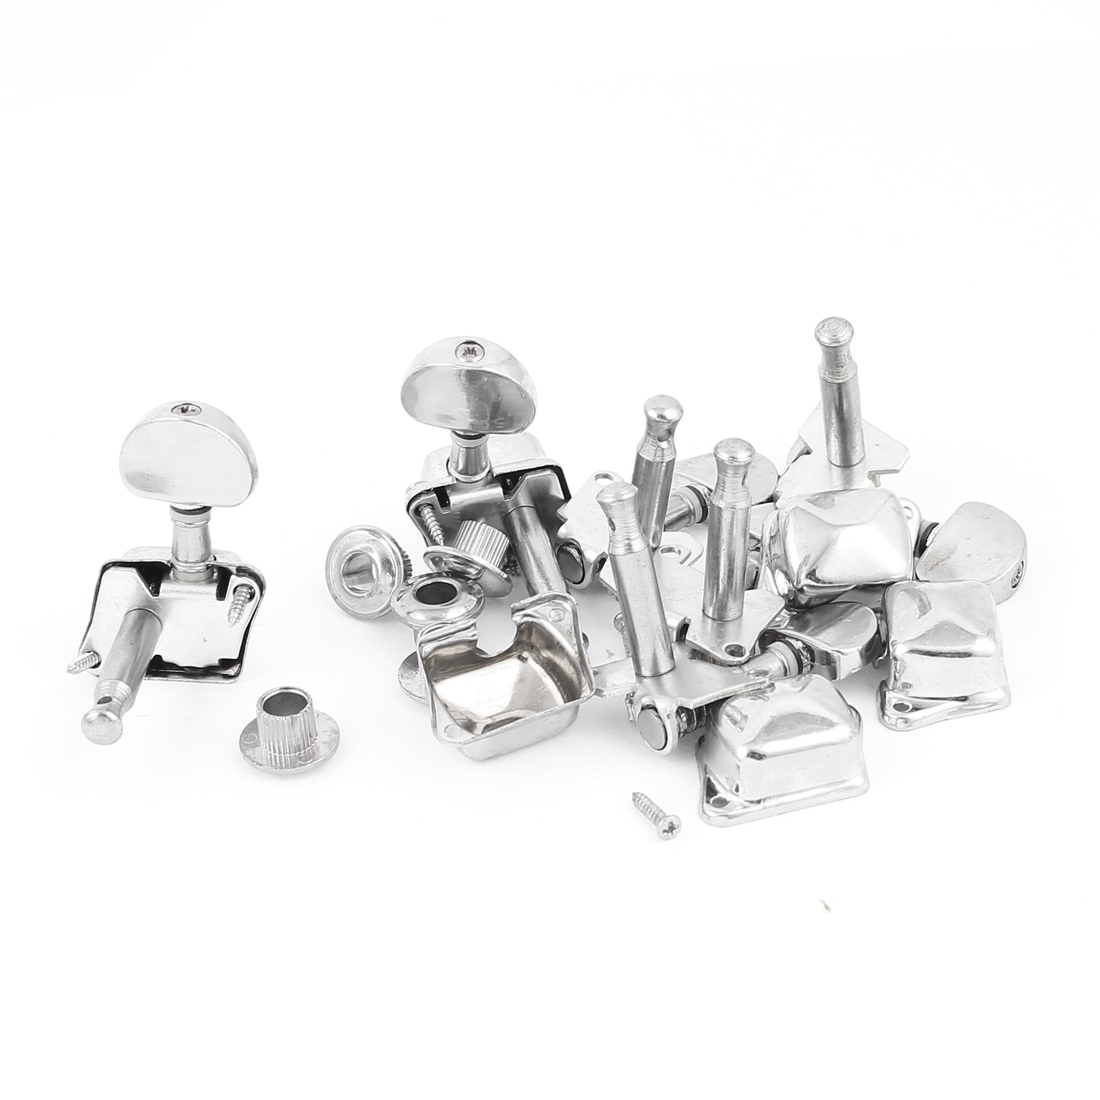 6 Pcs 3L3R Semiclosed Guitar Tuning Pegs String Knob Tuner Machine Heads